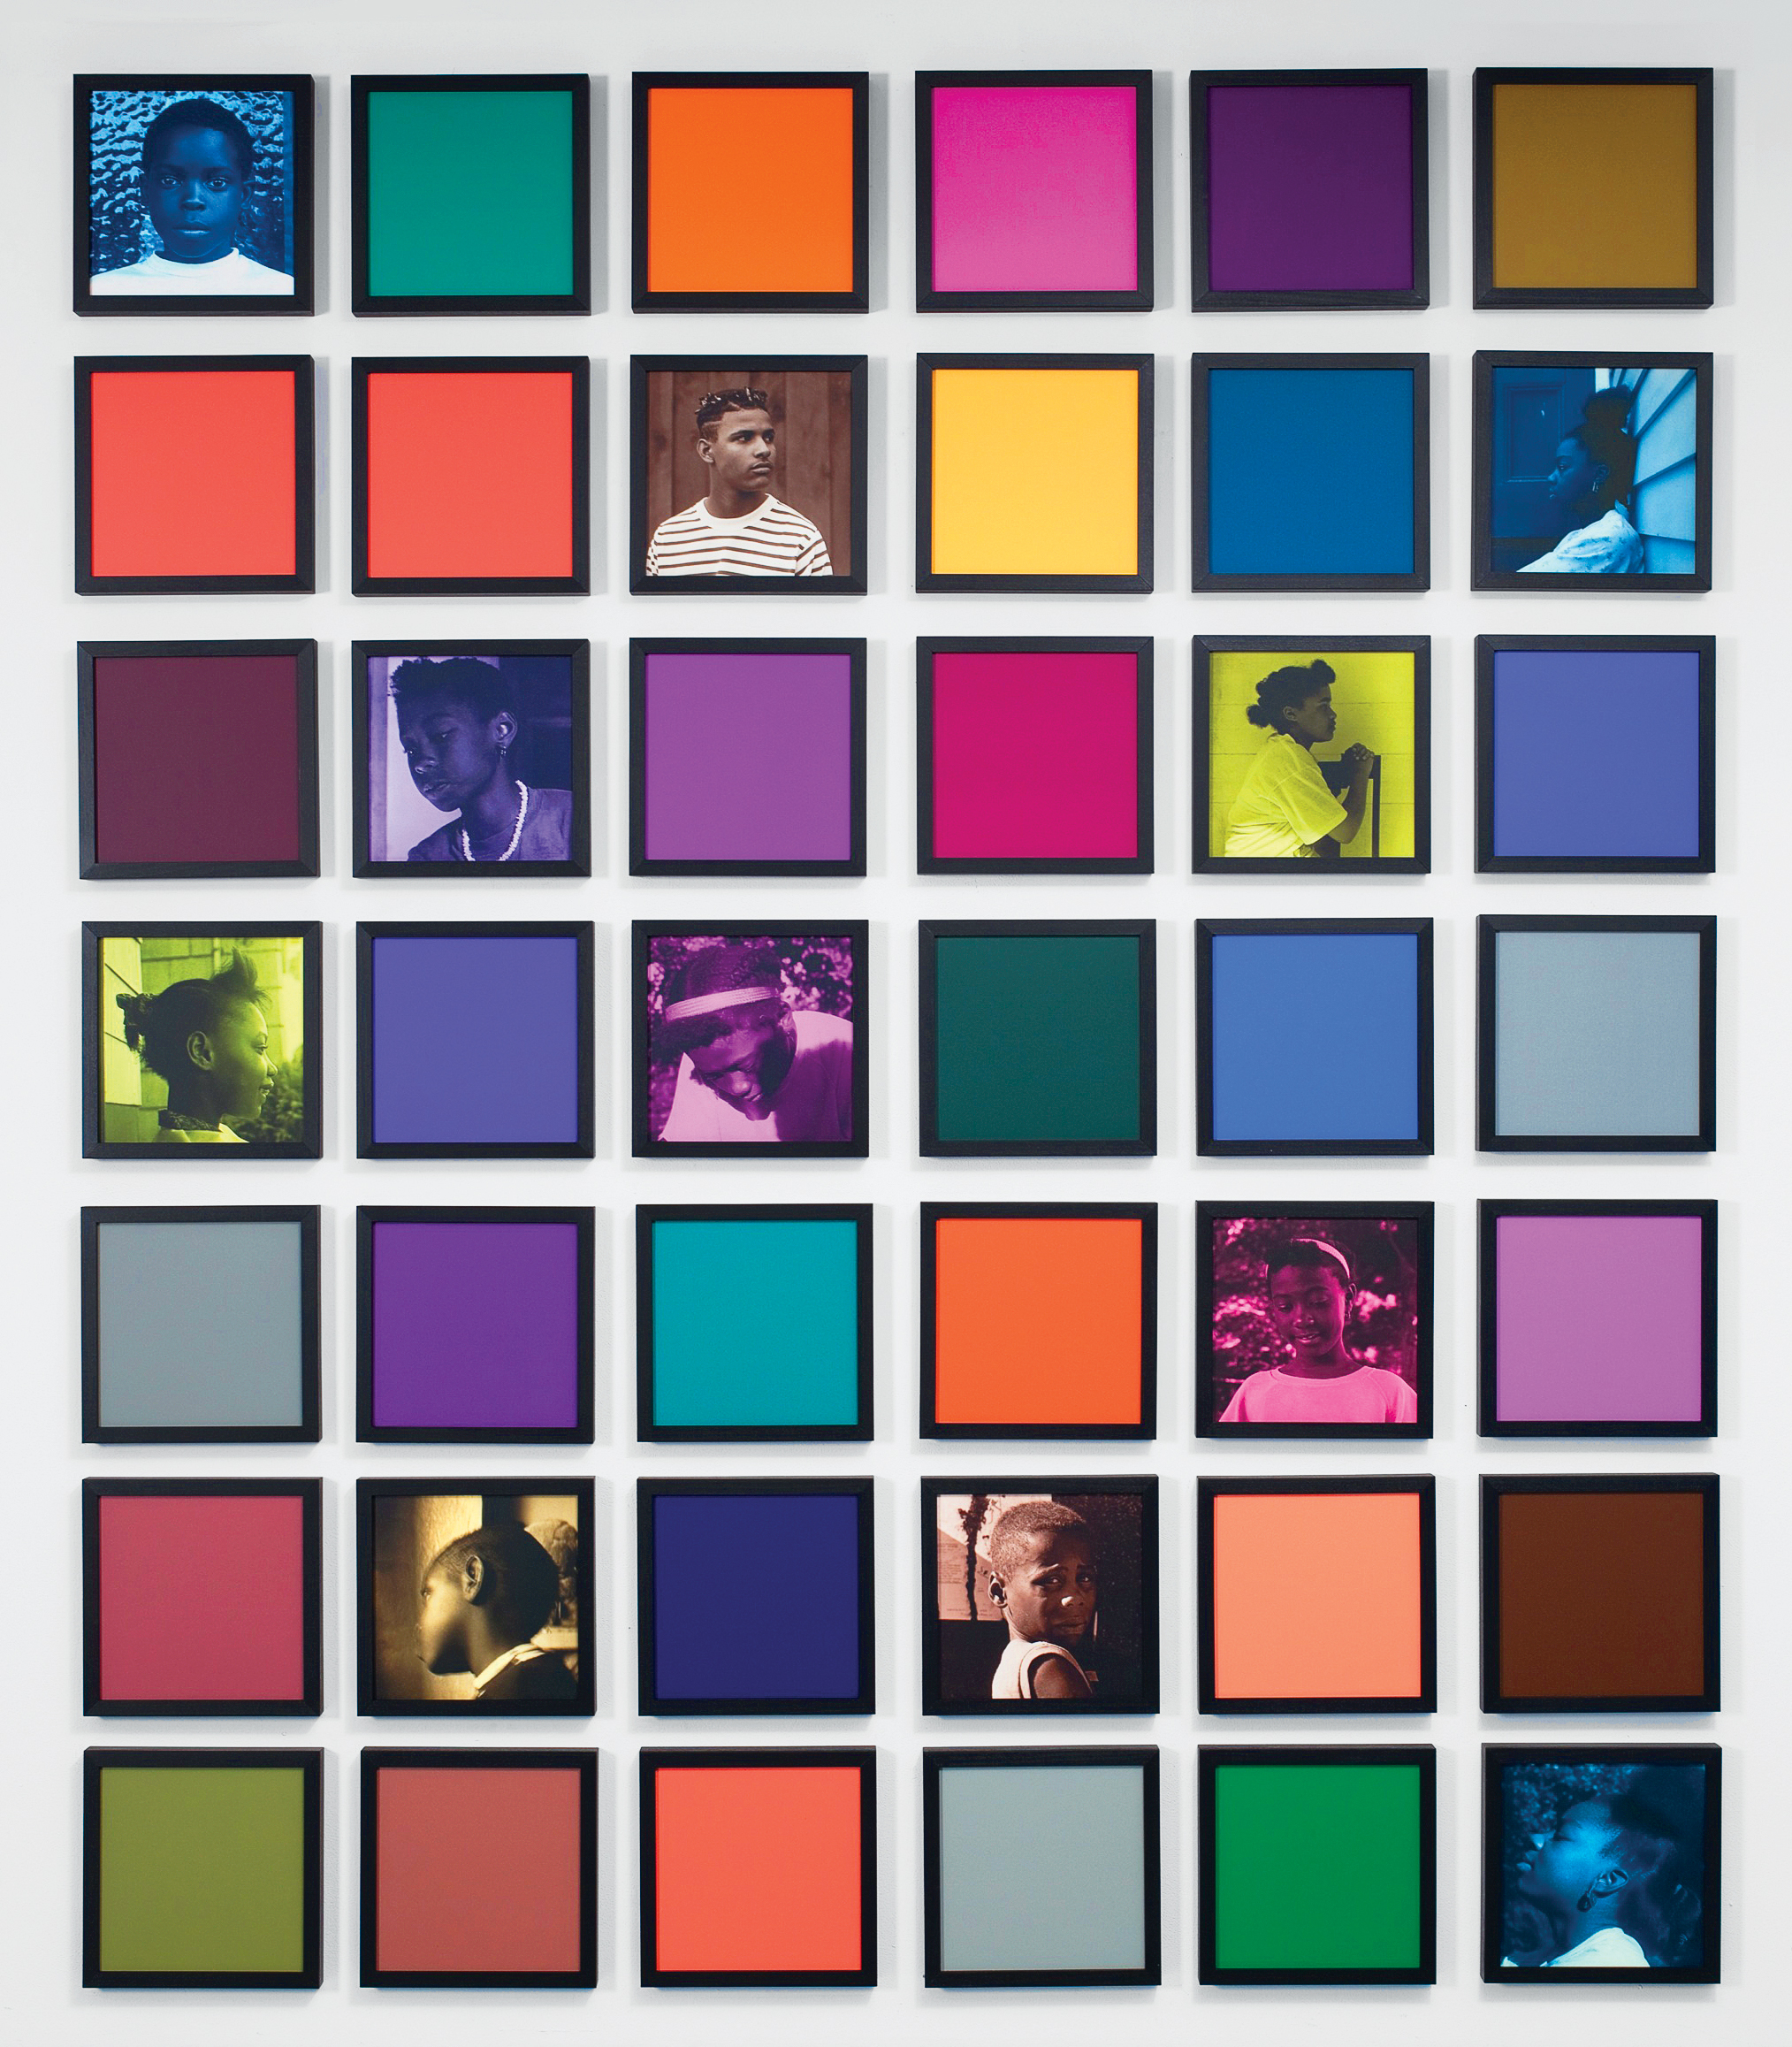 Carrie Mae Weems, Untitled (Colored People Grid), 2009. Courtesy the artist and Jack Shainman Gallery, New York, NY